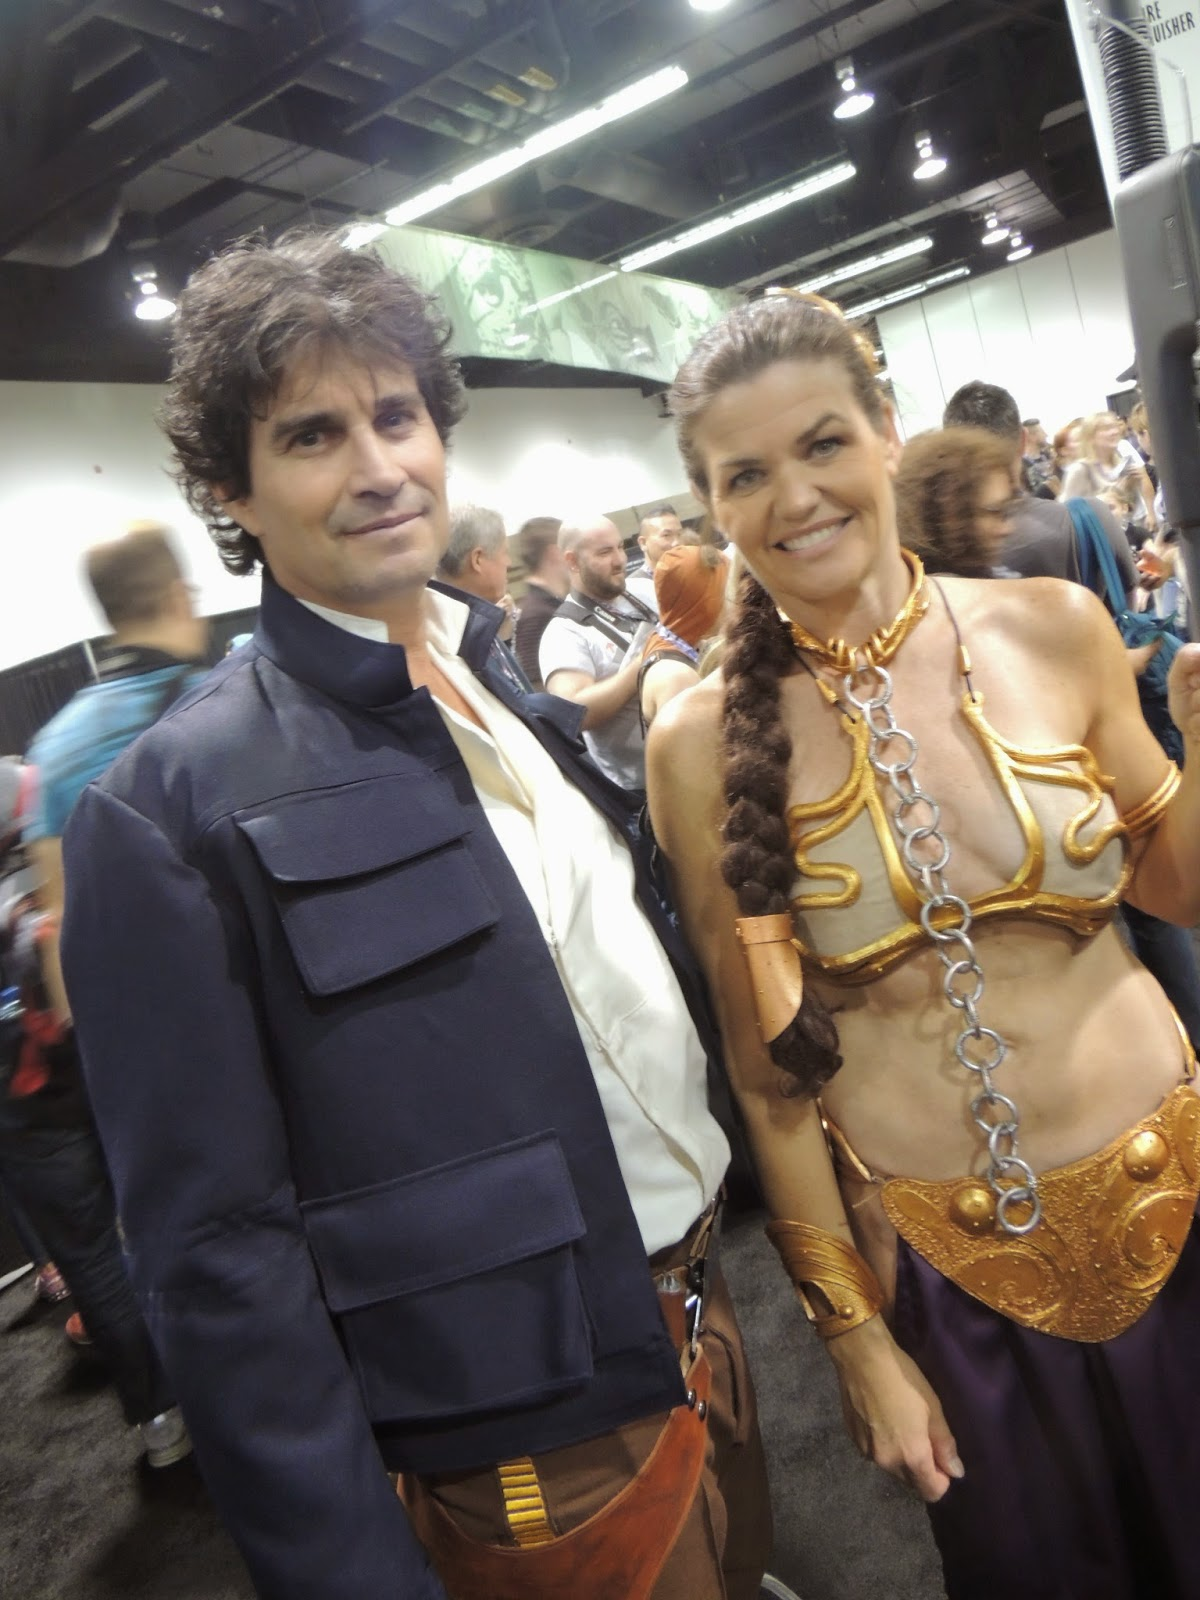 han-slave-leia-star-wars-celebration